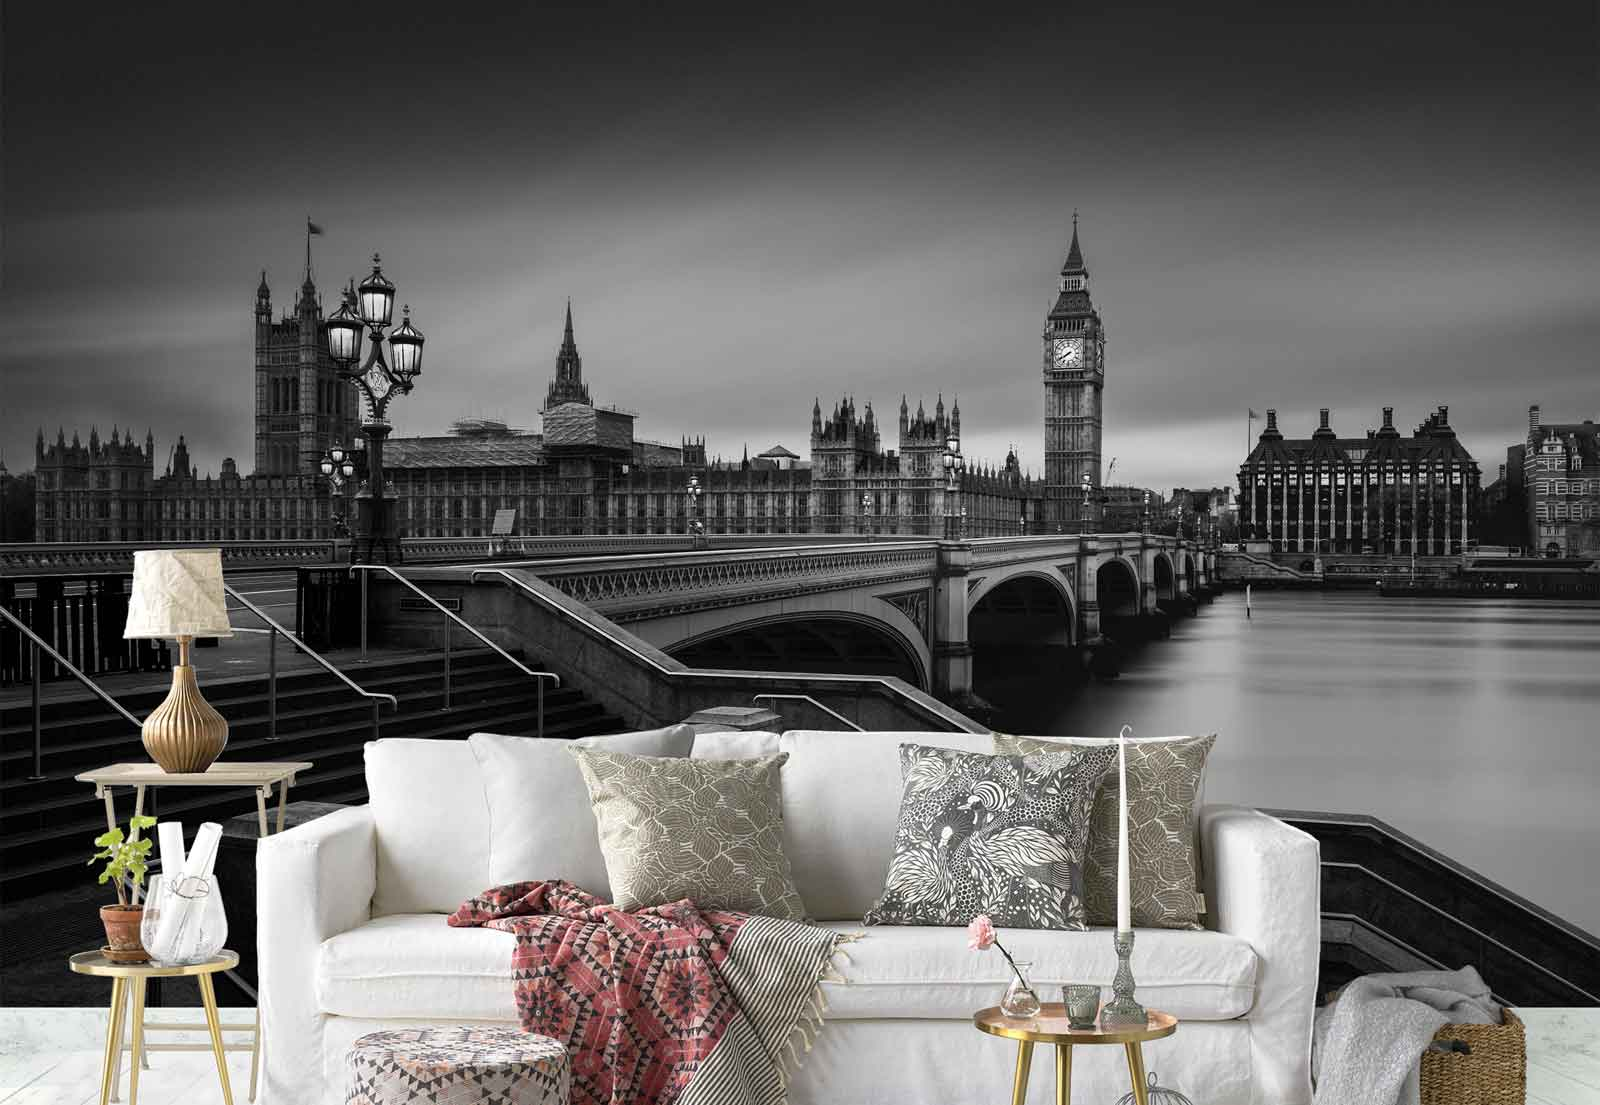 London bridge westminster palace photo wallpaper wall mural 1x london bridge westminster palace photo wallpaper wall mural amipublicfo Choice Image